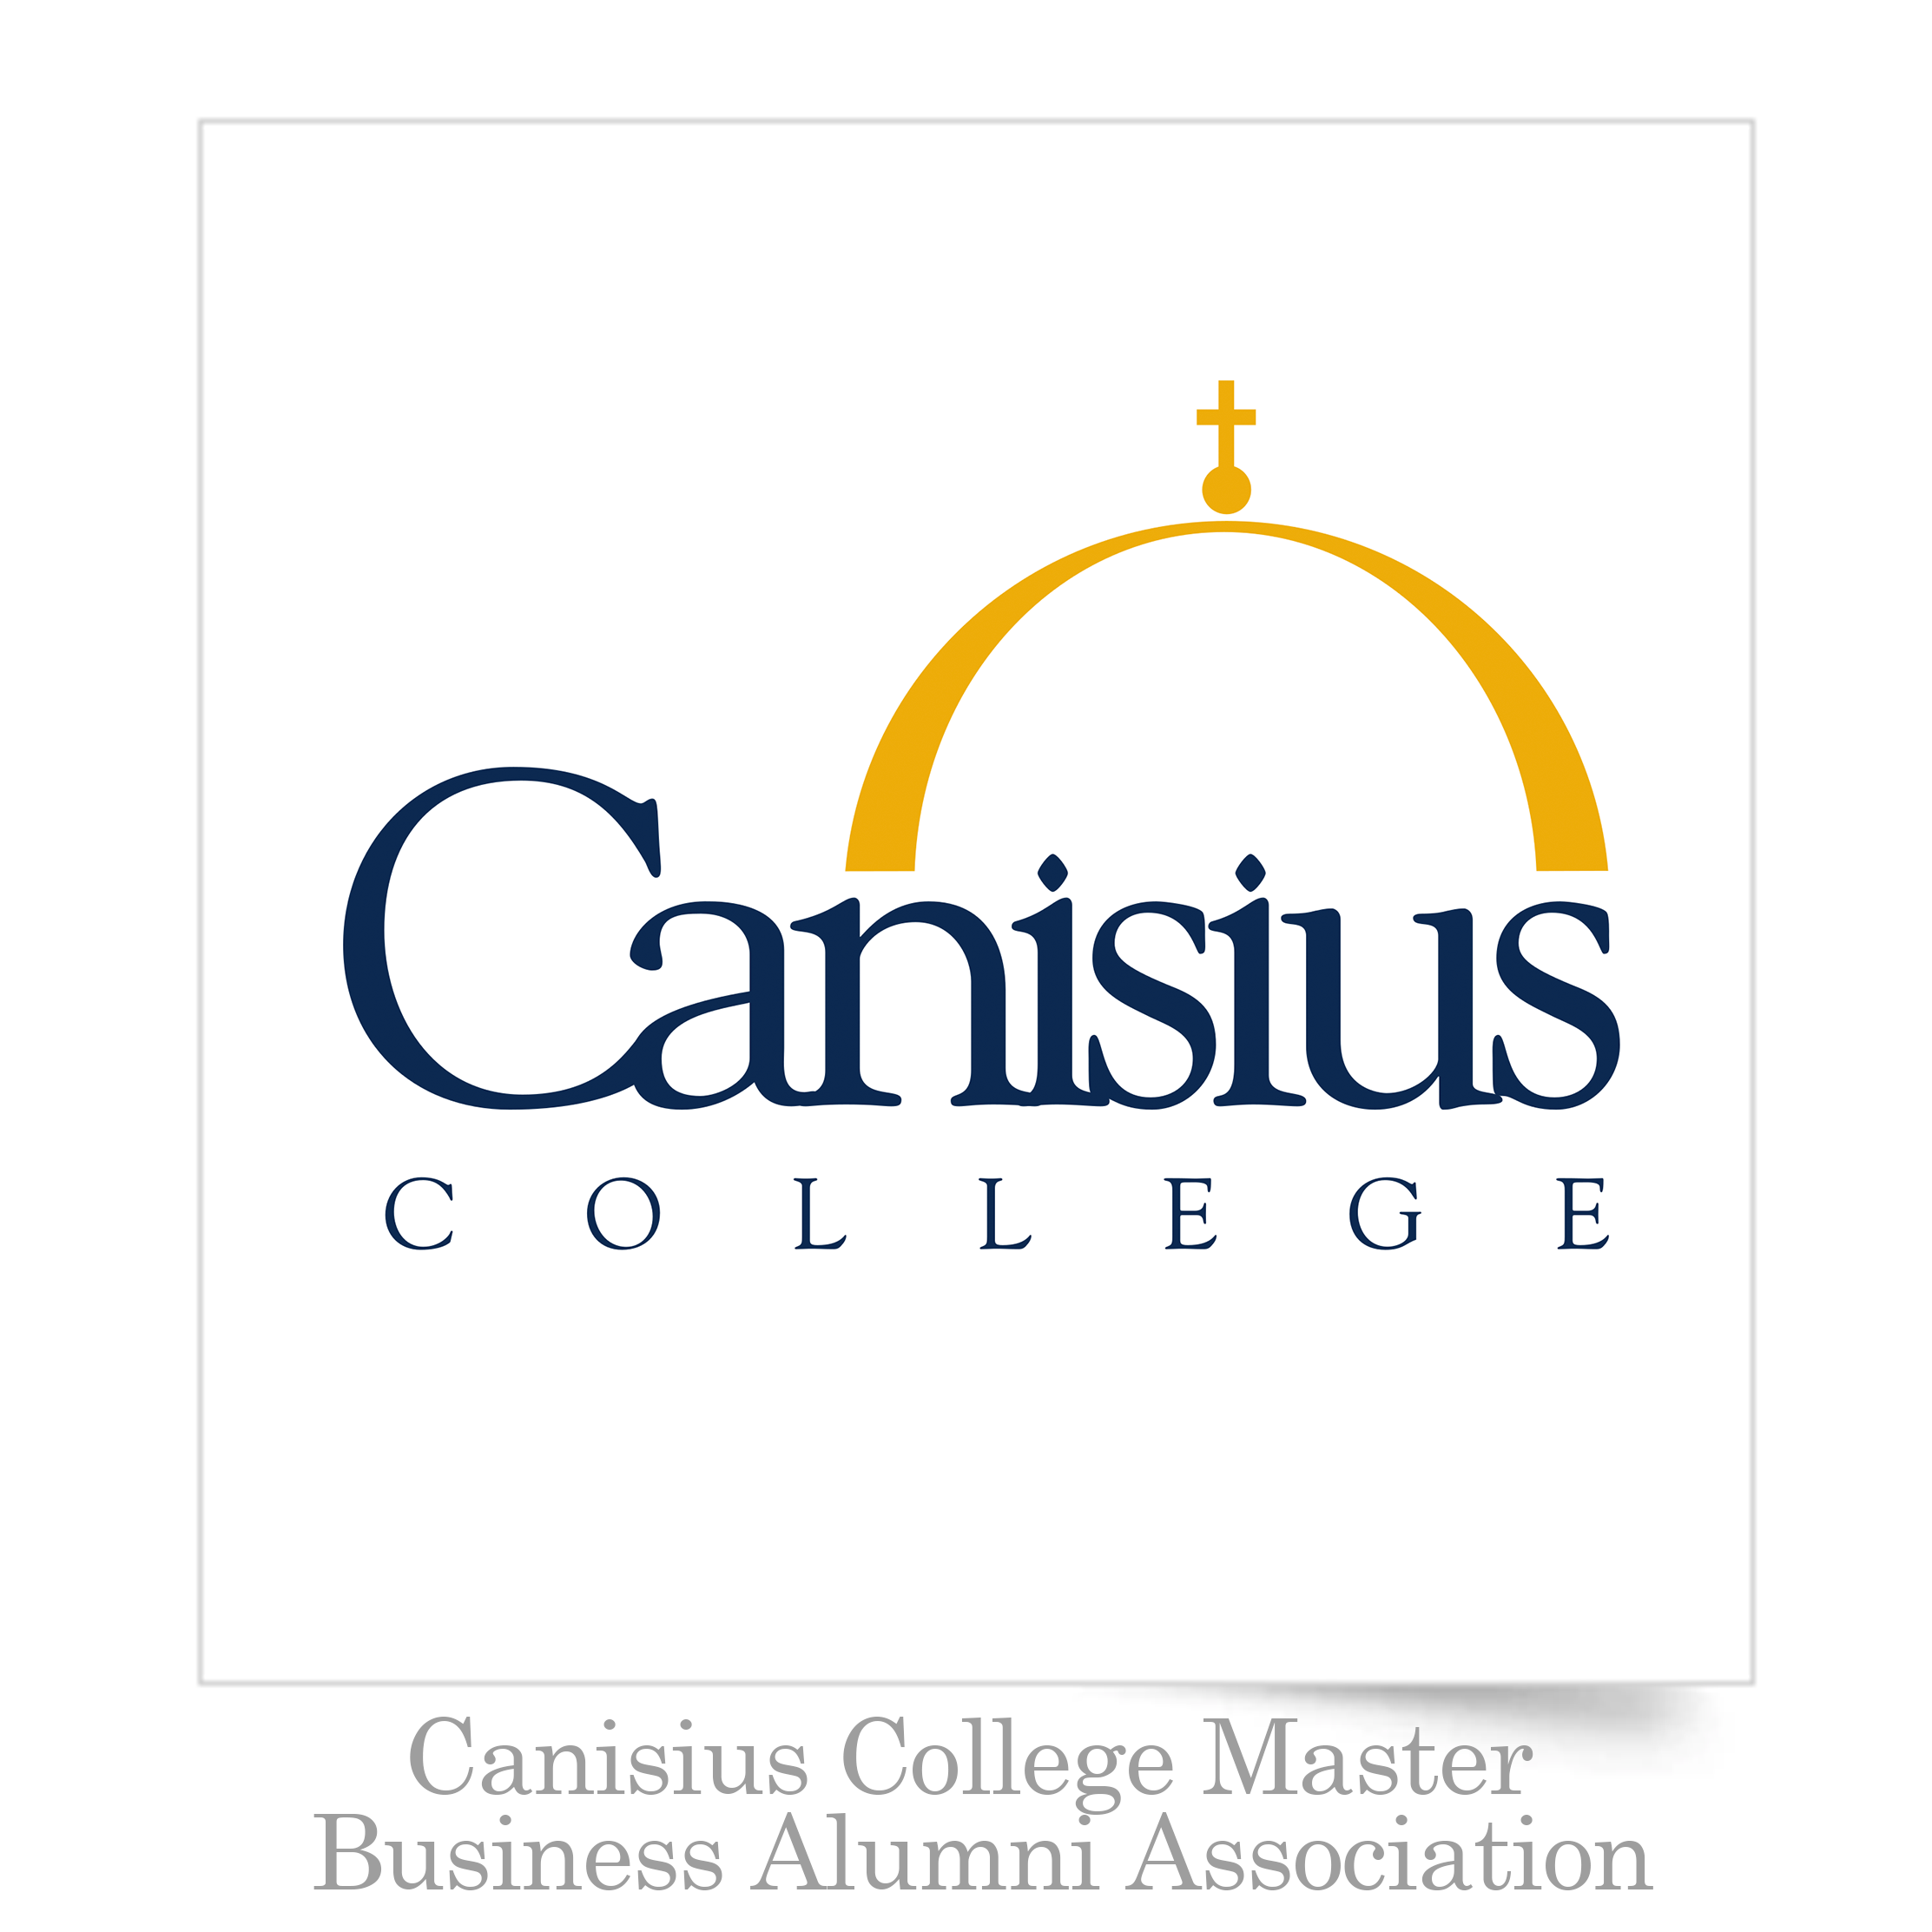 canisius college master business alumni association